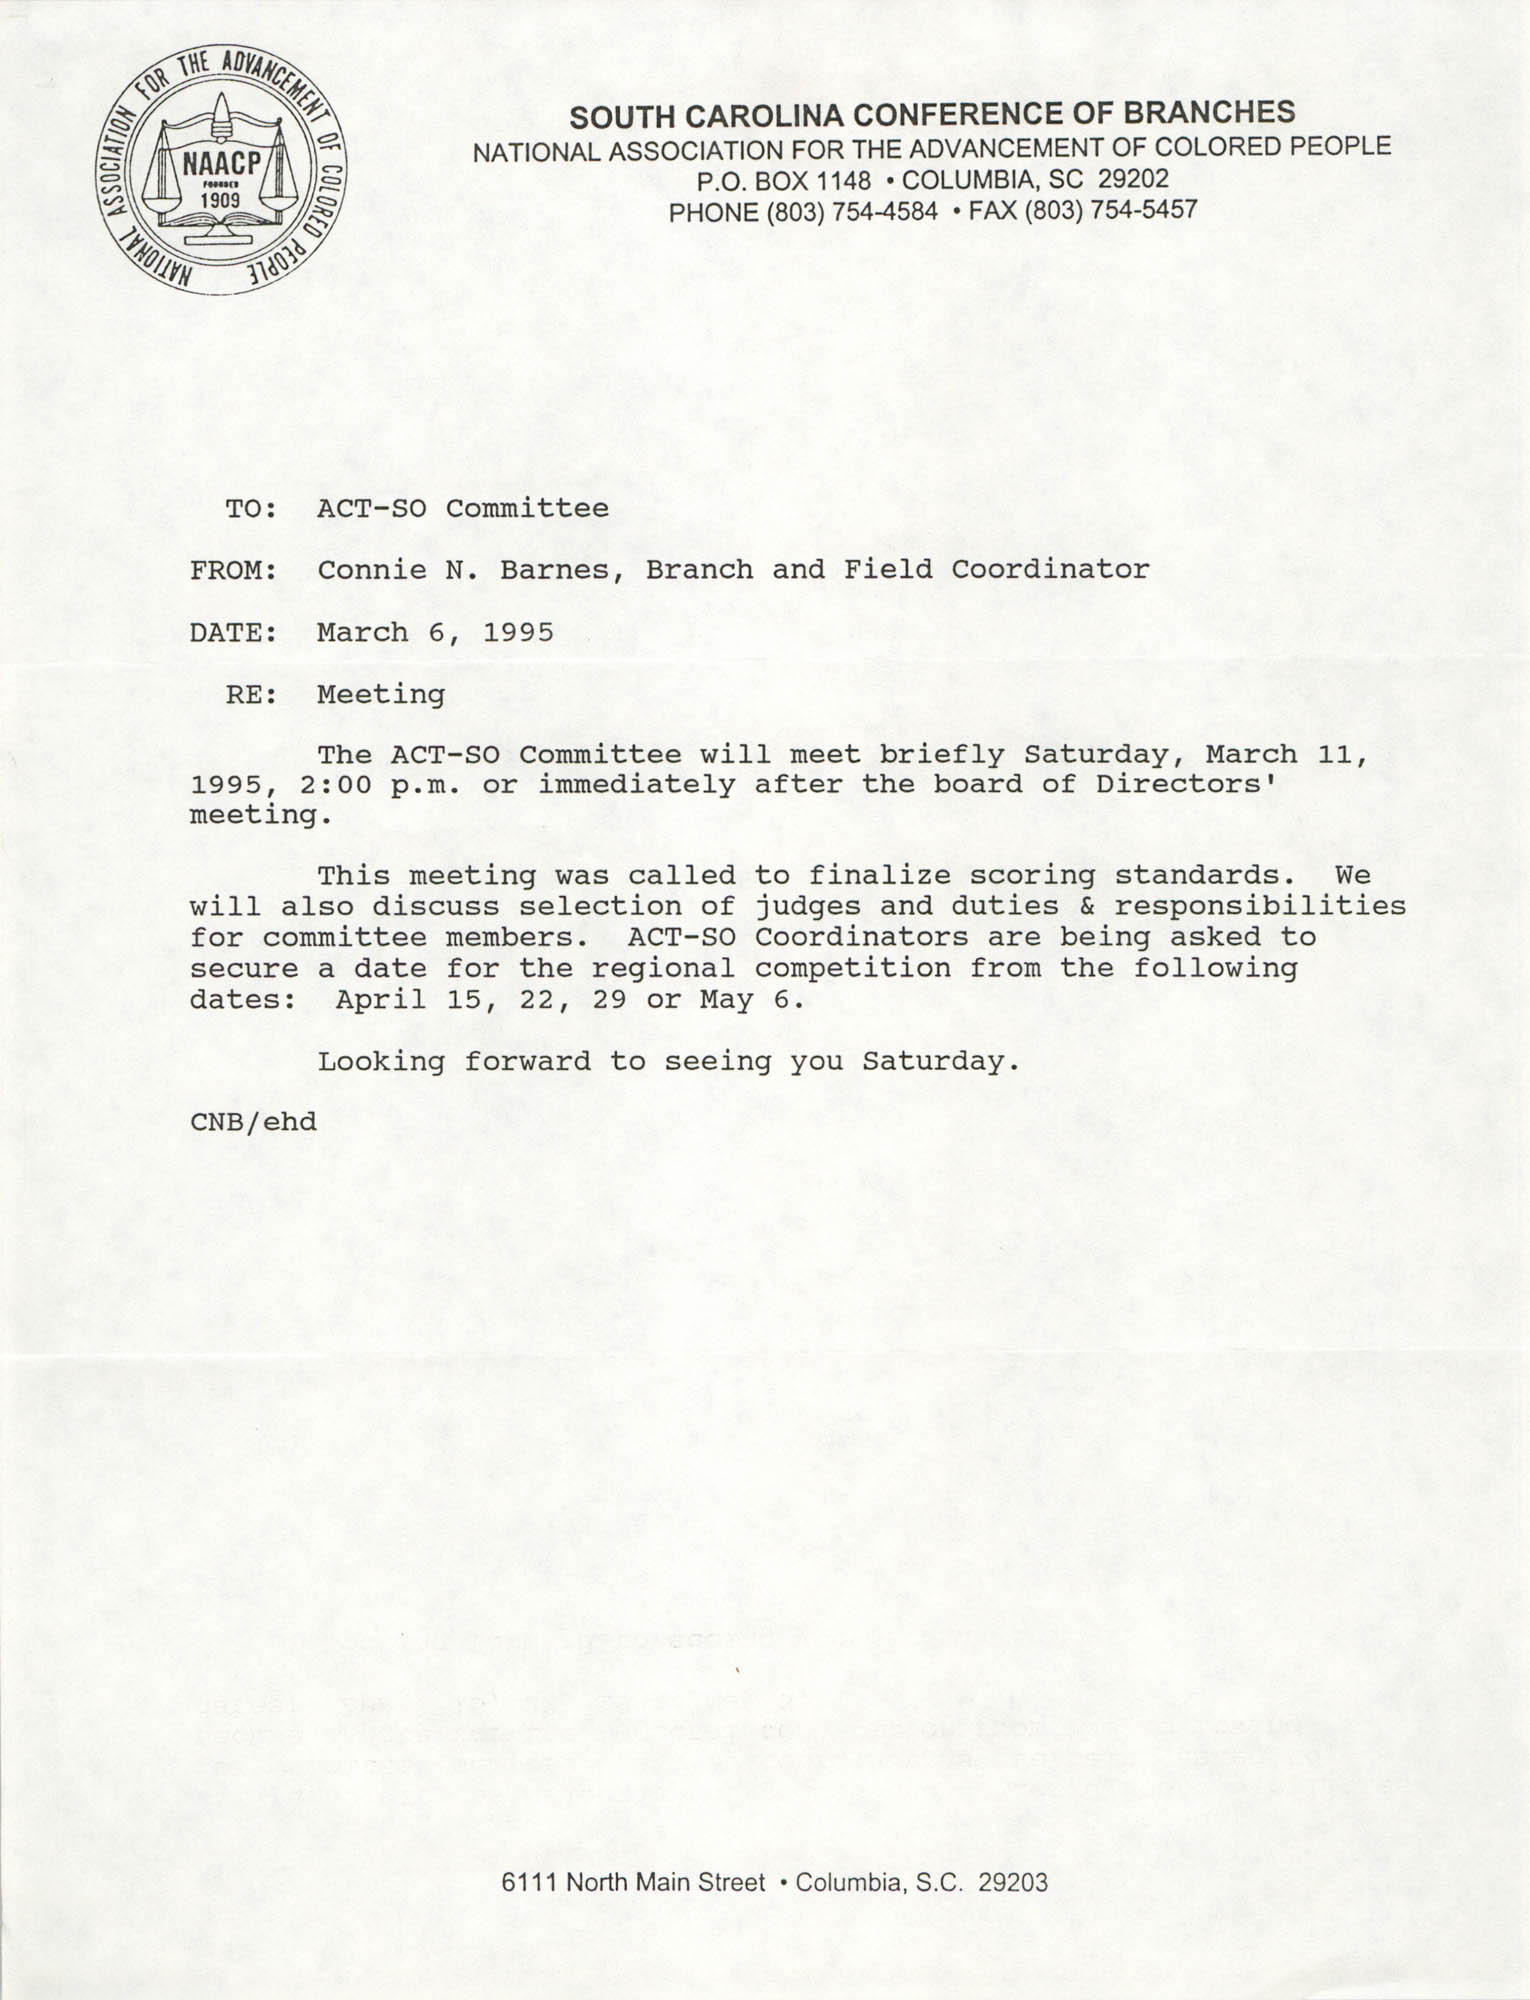 Memorandum, Connie N. Barnes, March 6, 1995